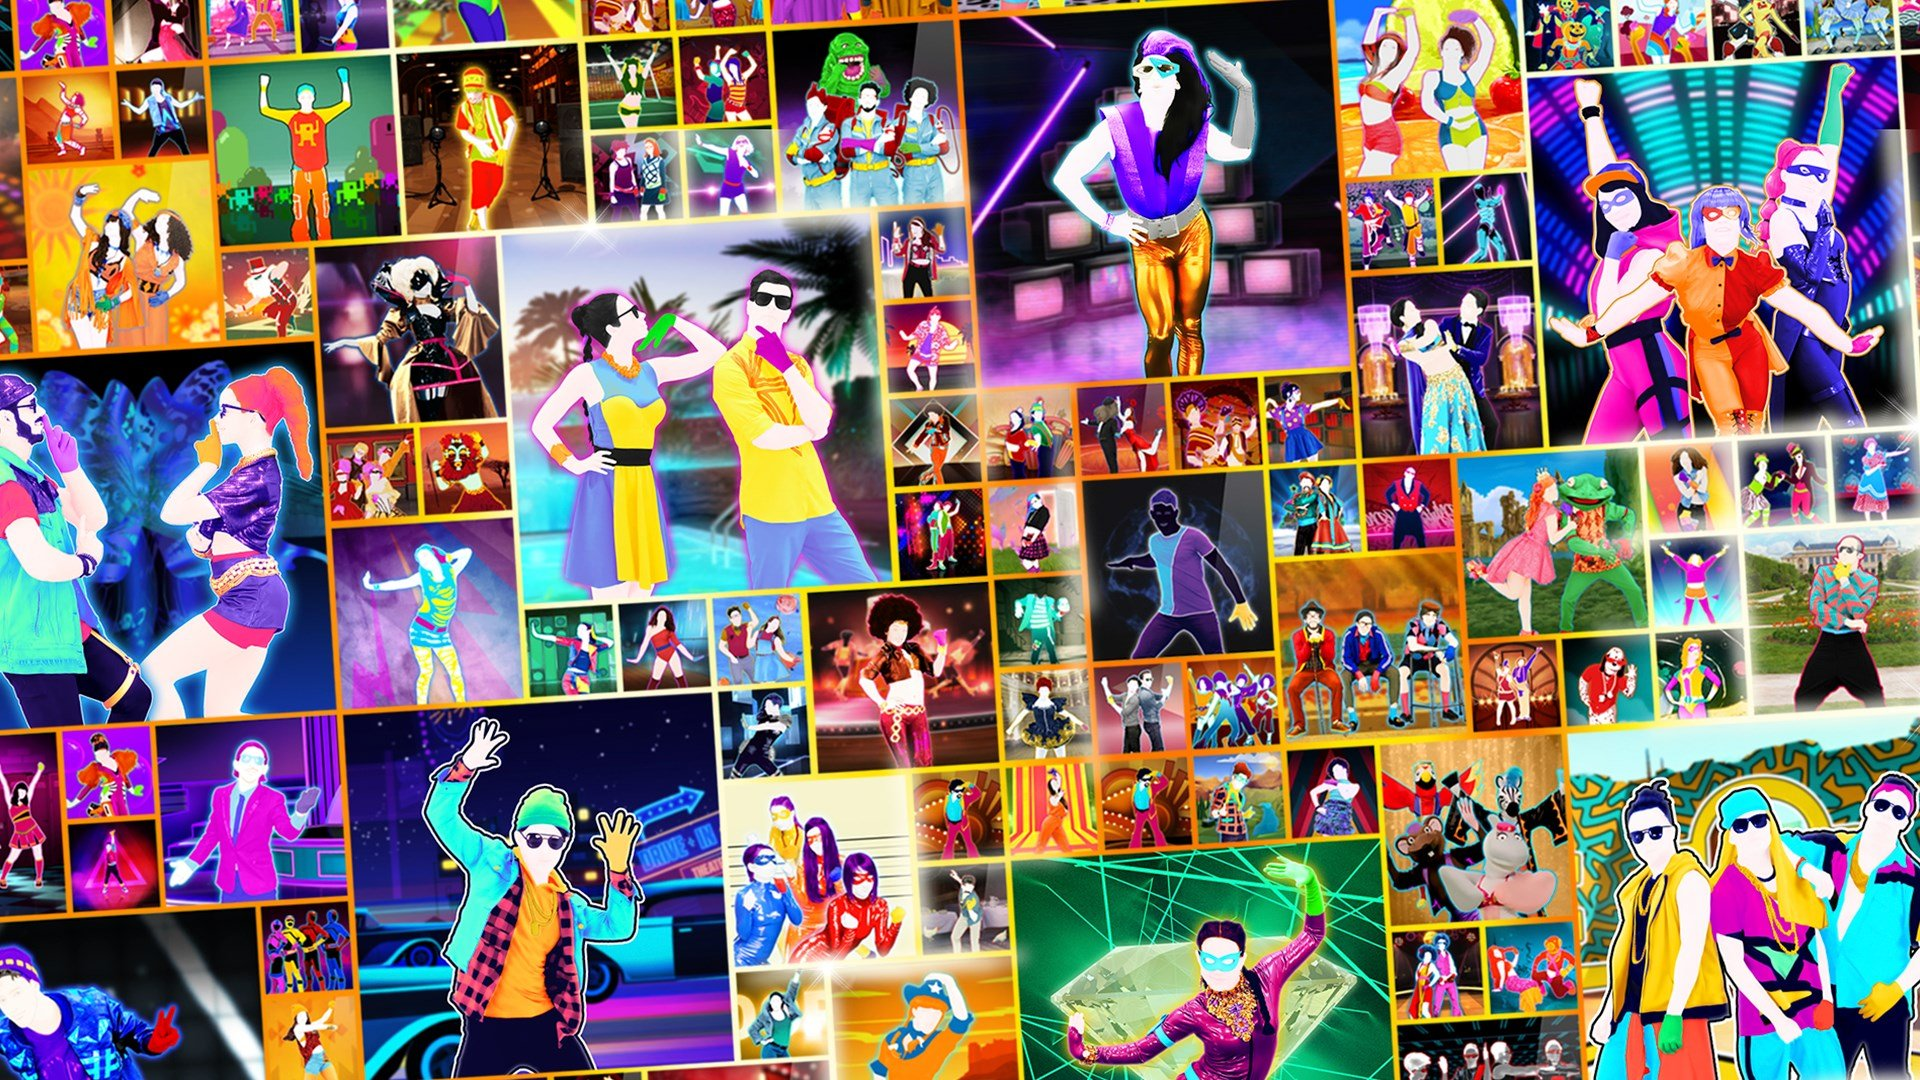 Buy Just Dance Unlimited   1 month pass   Microsoft Store en IN 1920x1080